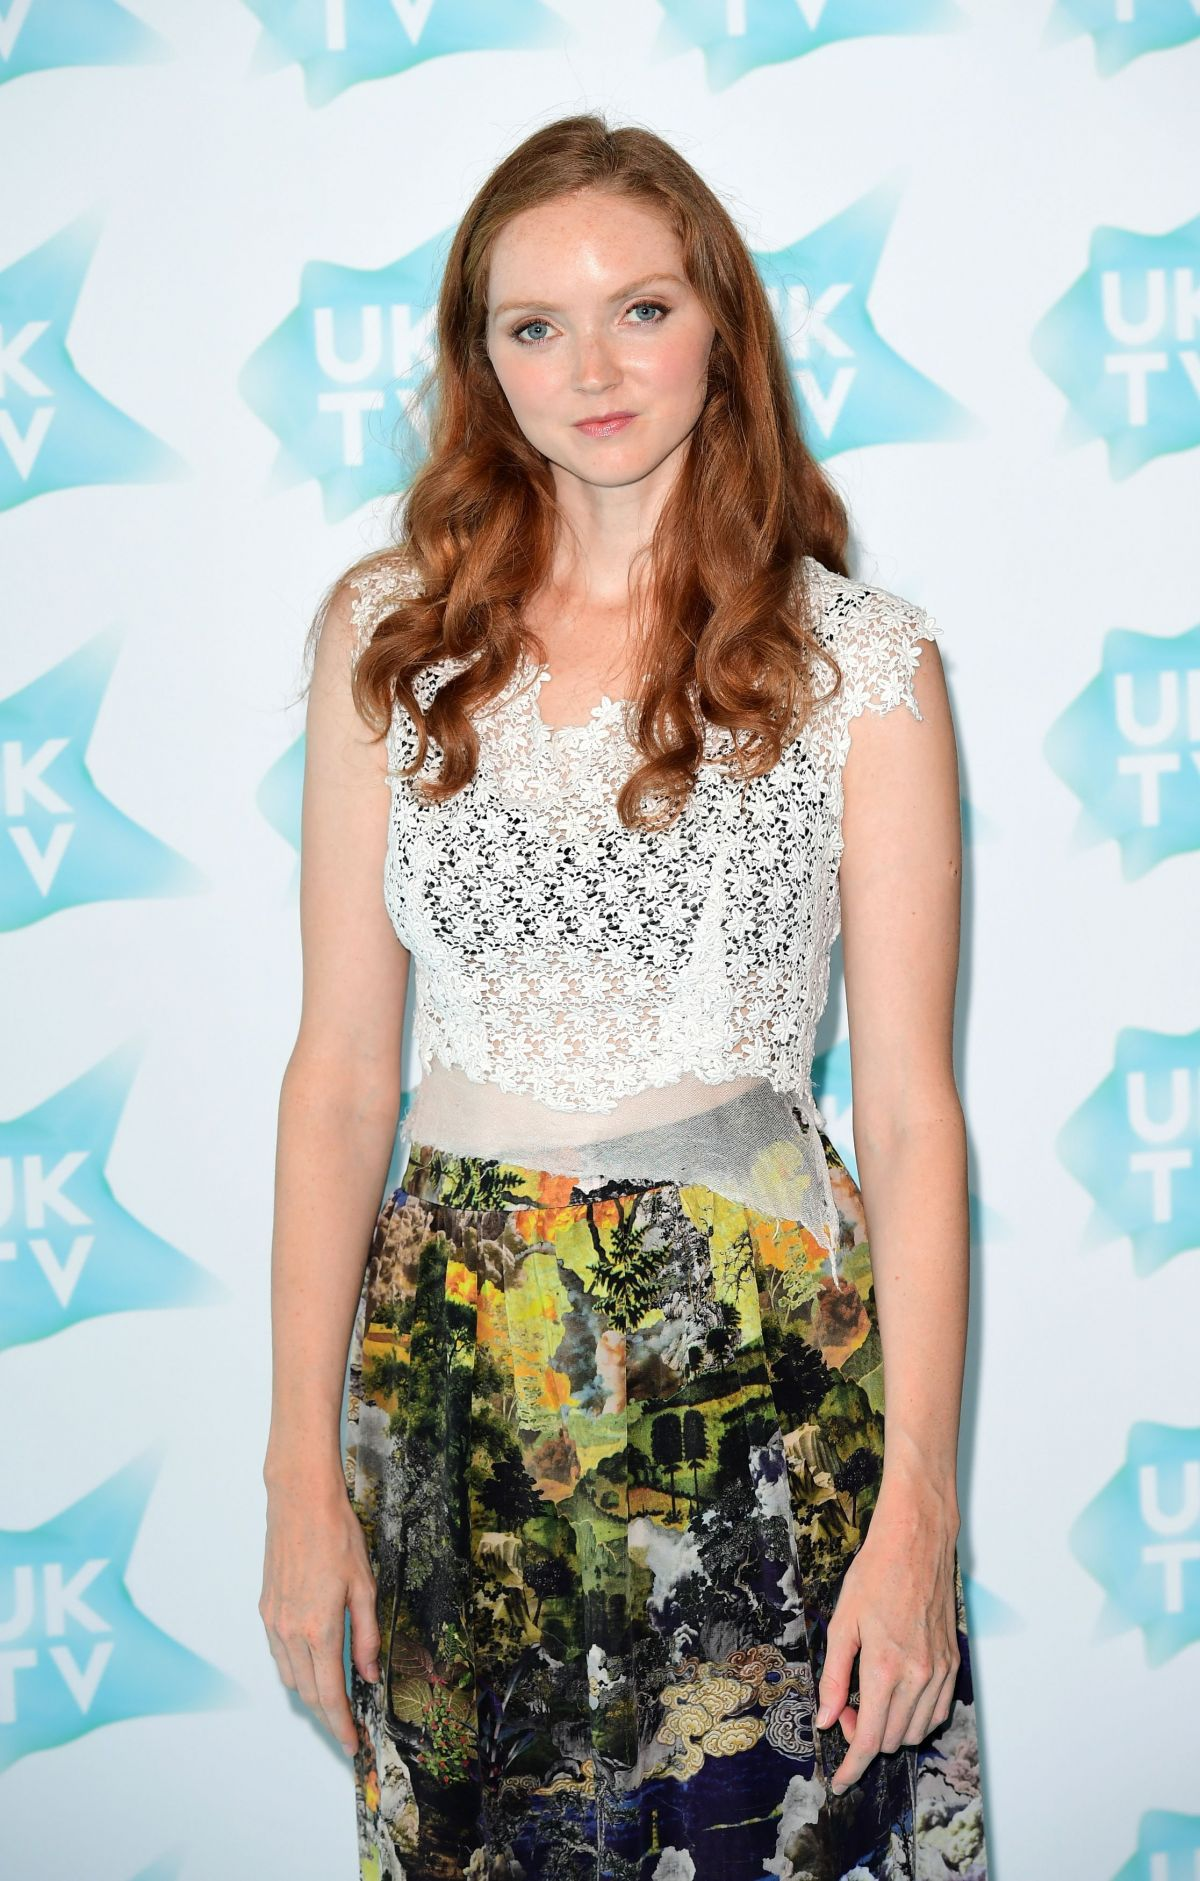 LILY COLE at UKTV Live New Season Launch in London 09/05/2016